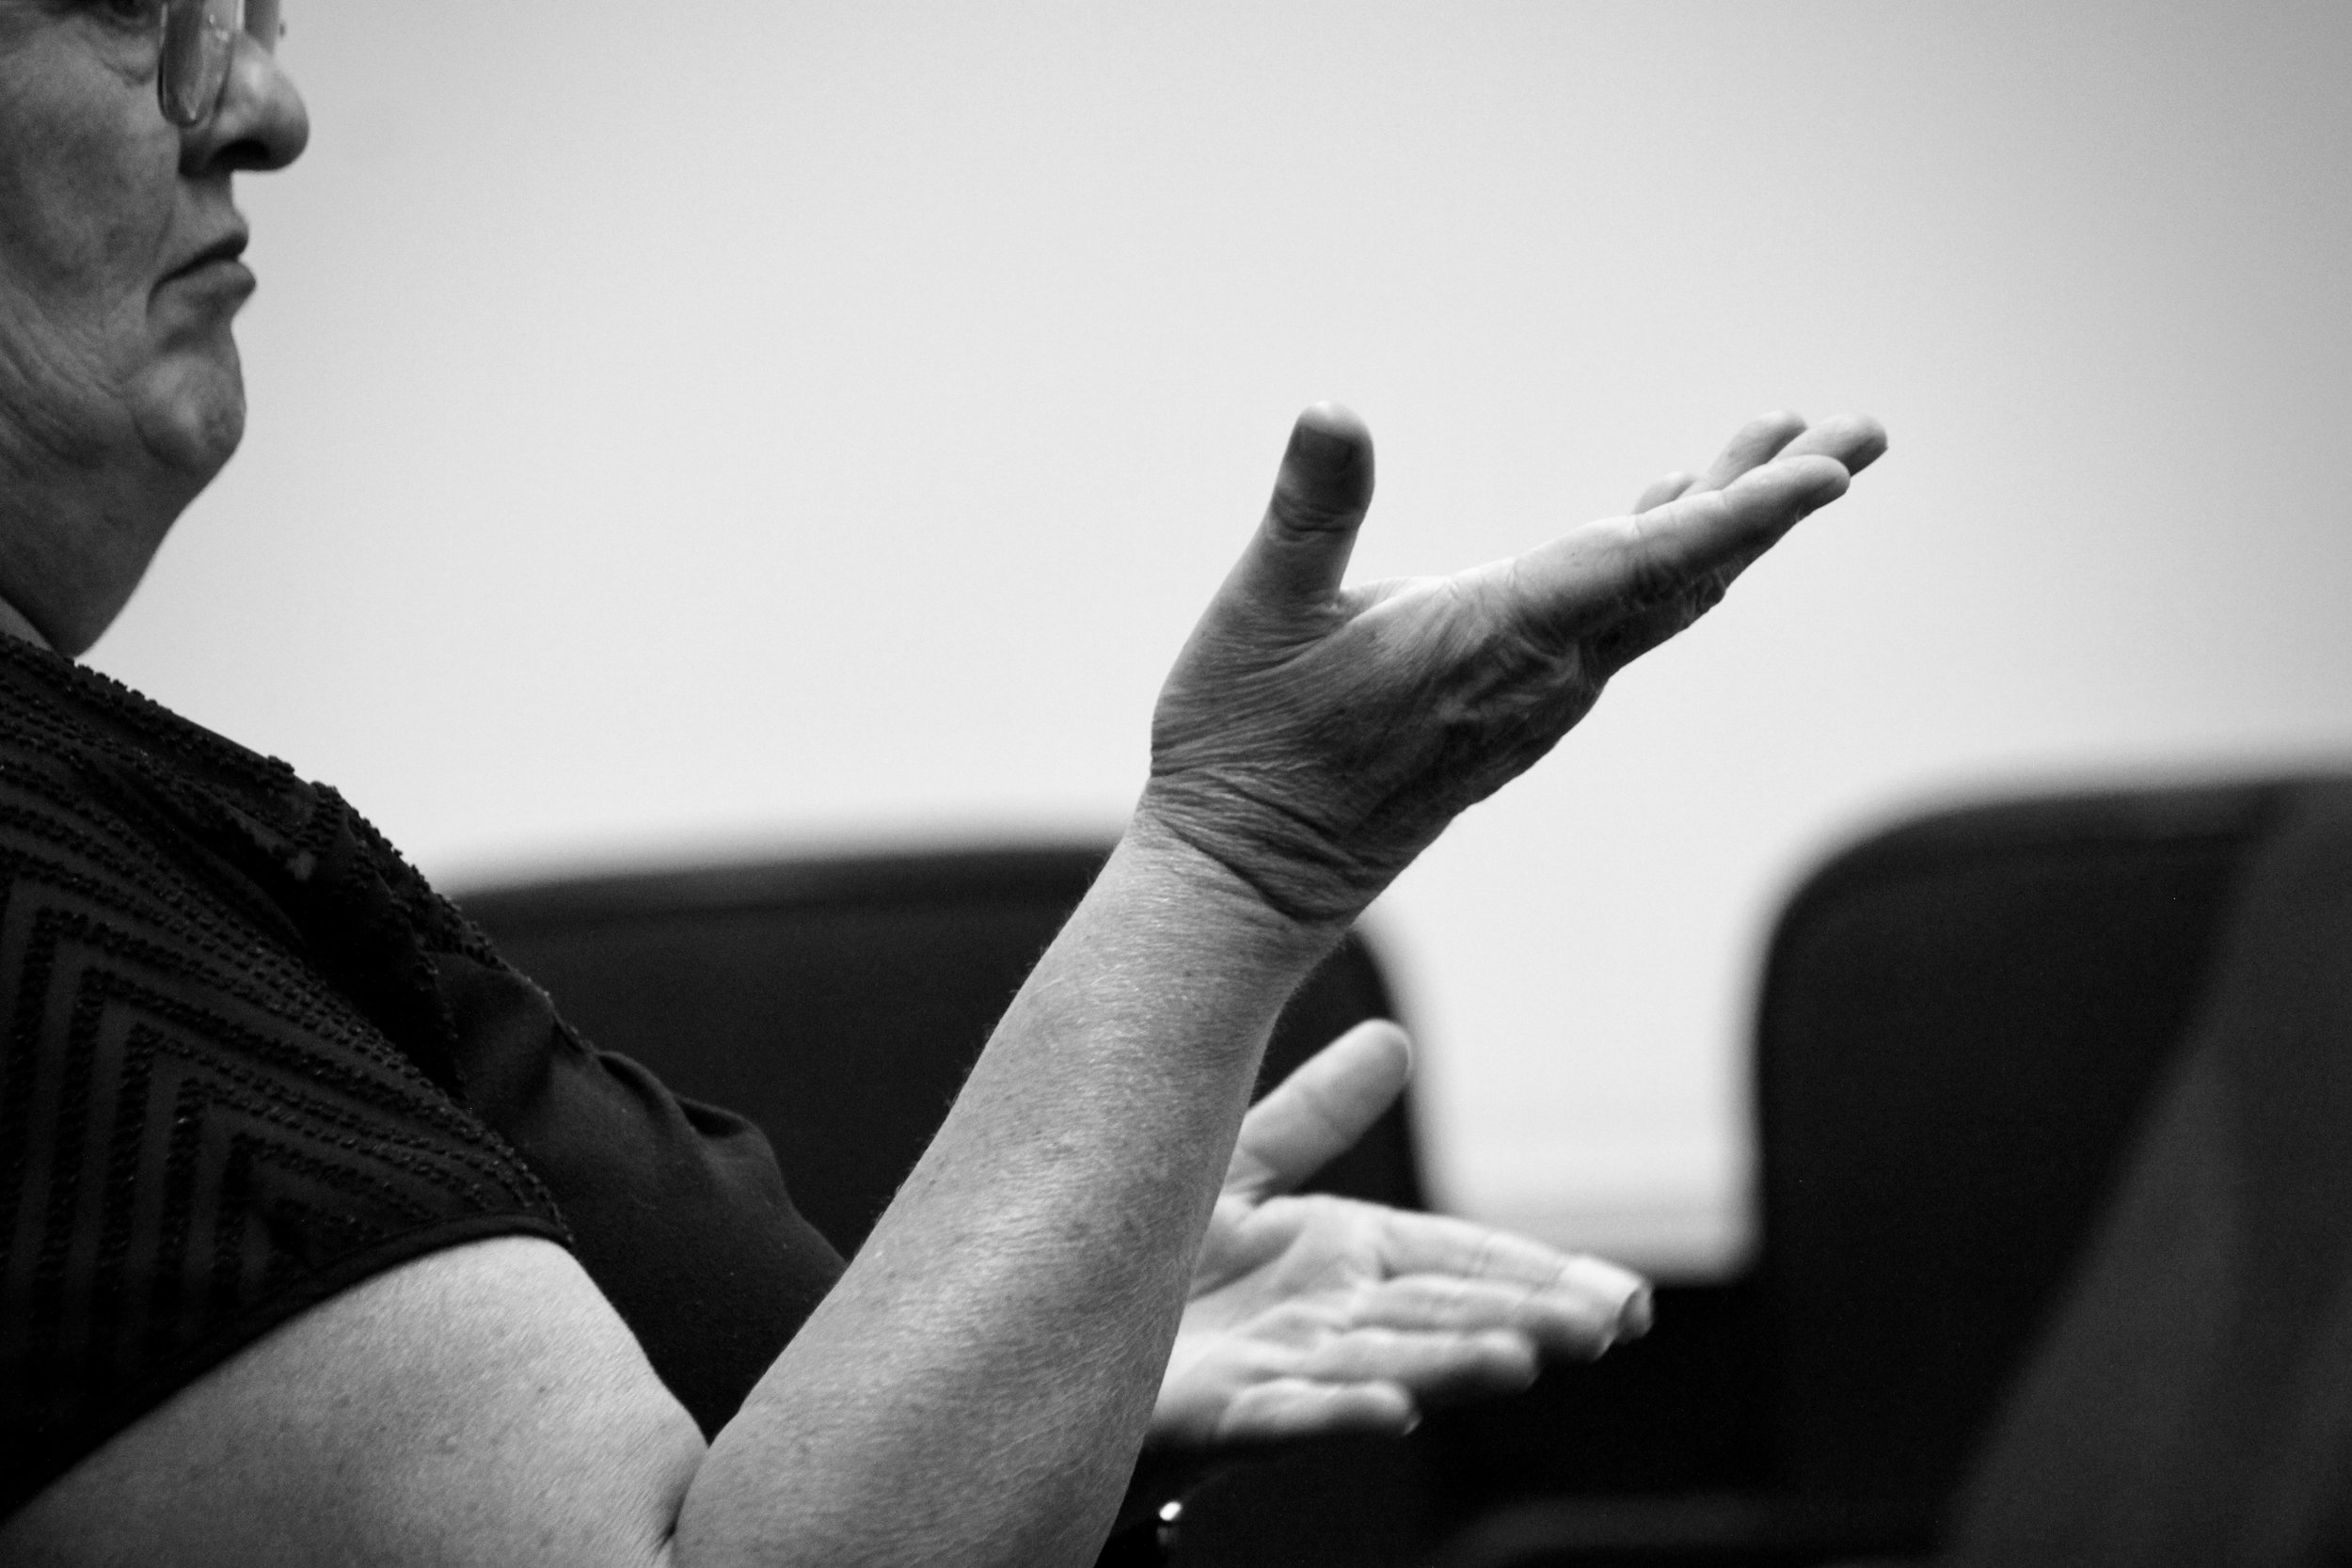 A close up of a woman's arms and hands, she is gesturing with both palms facing up, hands at different heights in front of her. The profile of her face is only just visible on the far left side of the shot.